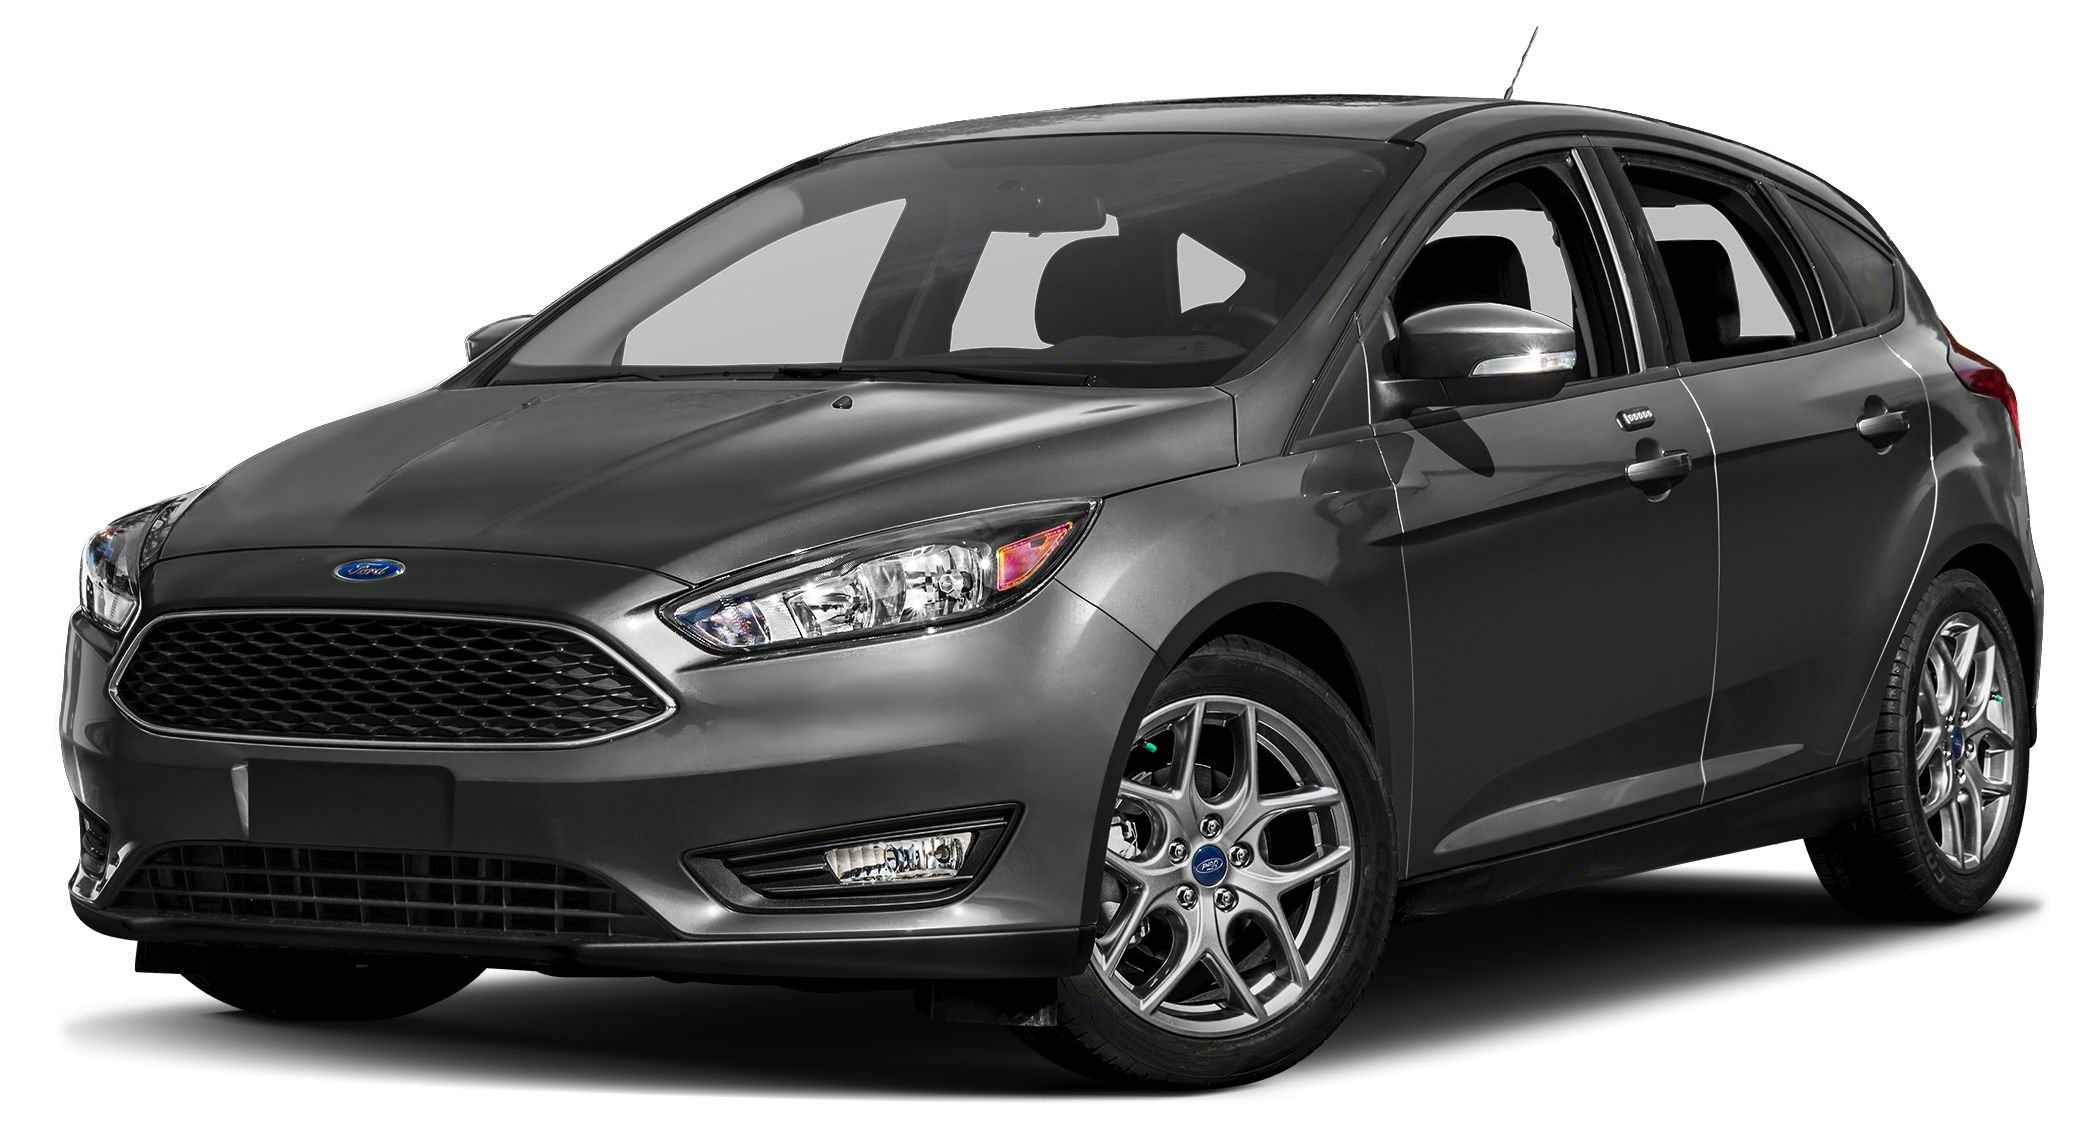 2018 Ford Focus SE 2018 Ford Focus SE 3826 HighwayCity MPG Price includes 2500 - Retail Custo